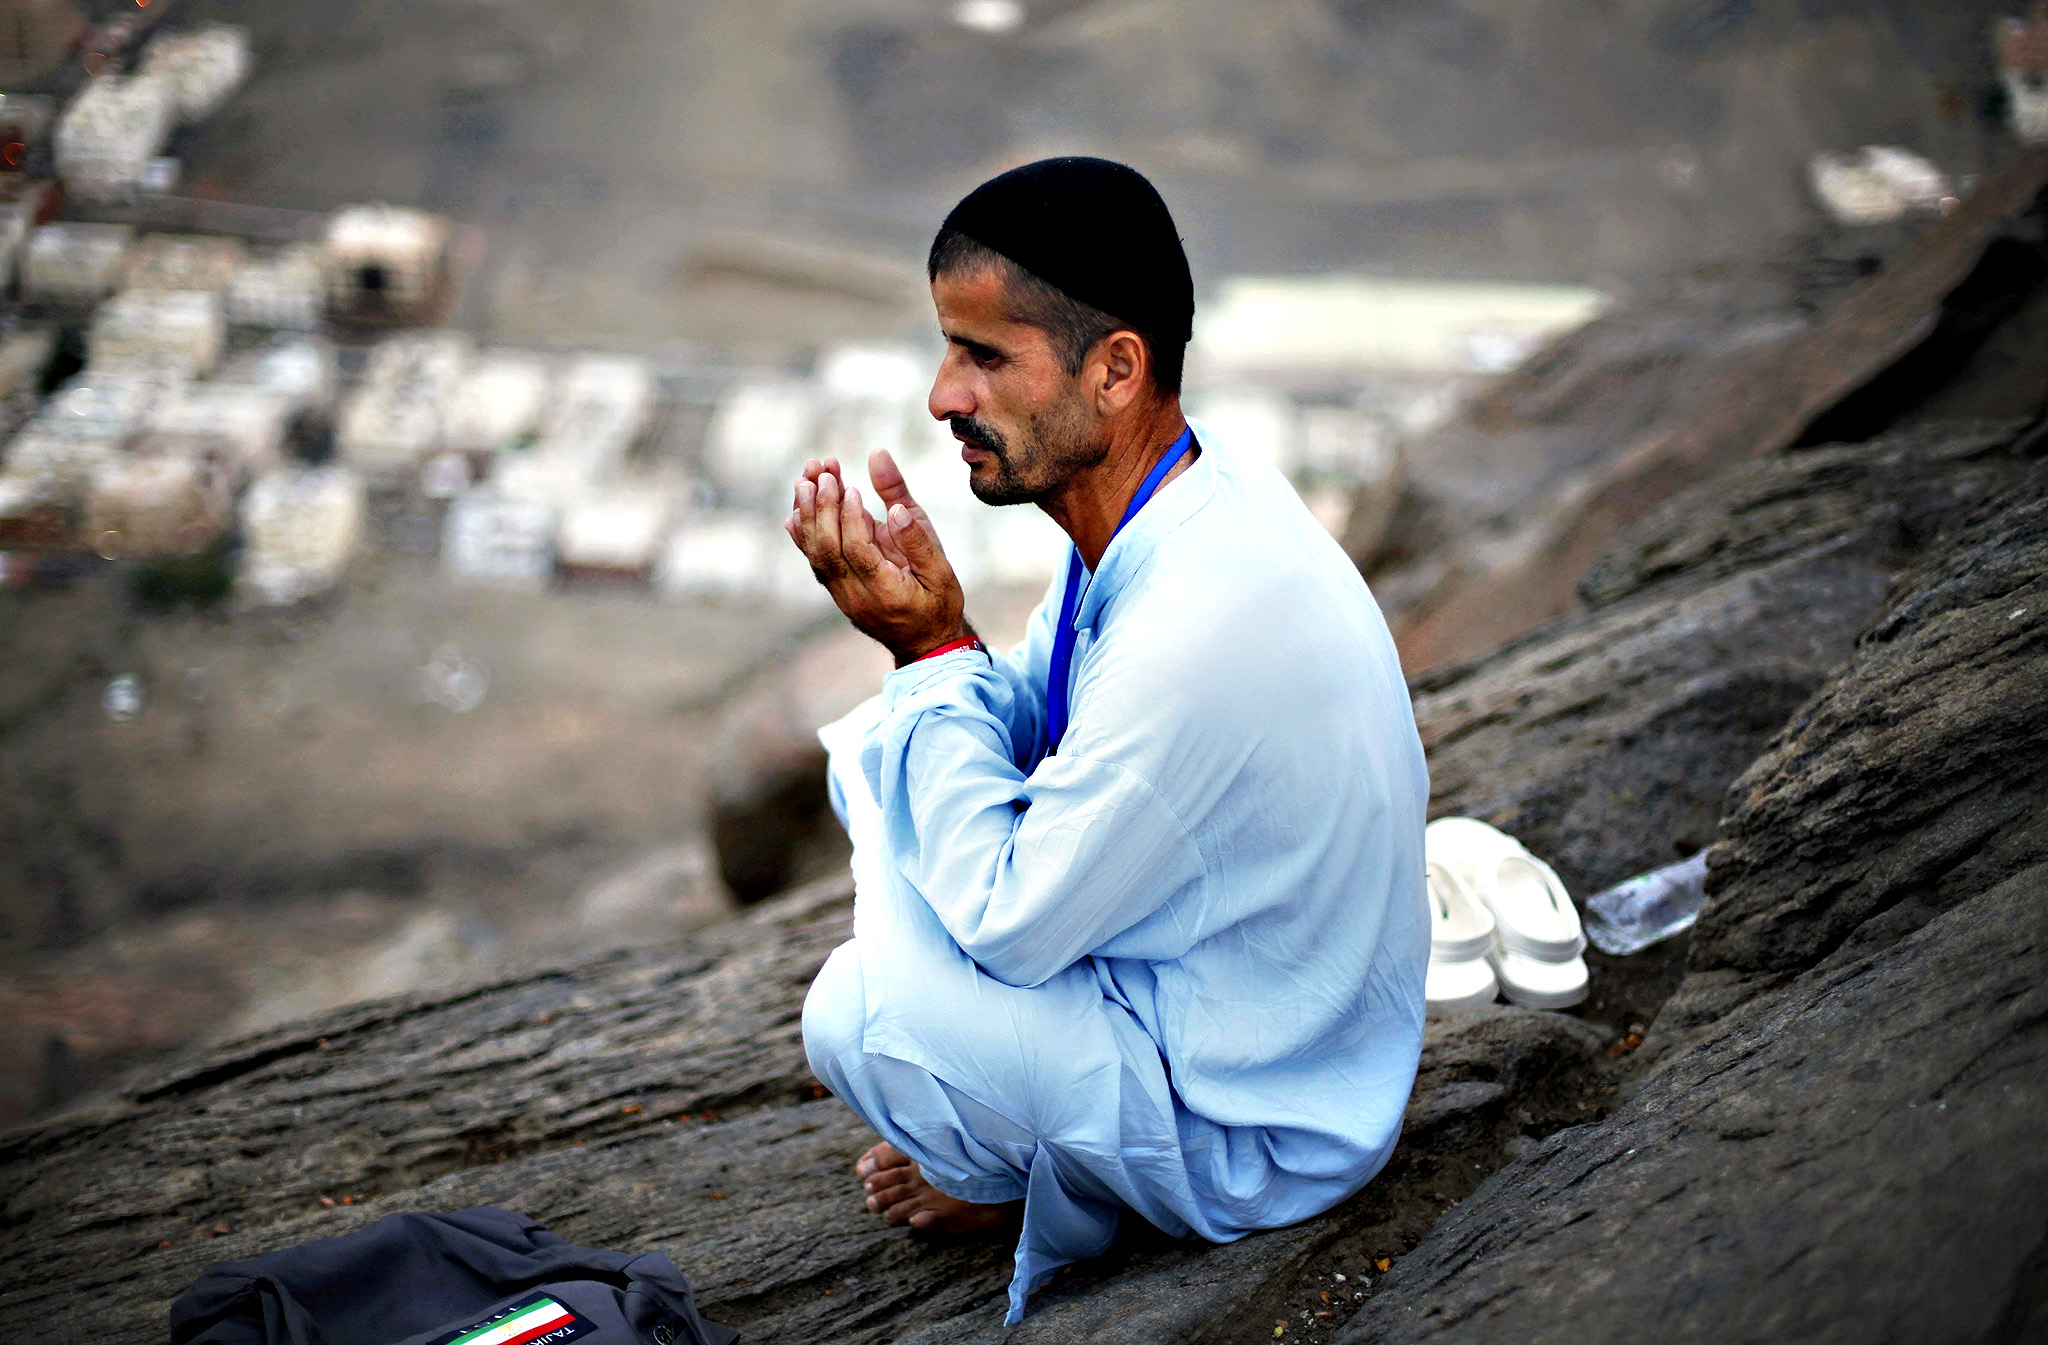 A Muslim pilgrim prays at Mount Al-Noor ahead of the annual haj pilgrimage in Mecca...A Muslim pilgrim prays at Mount Al-Noor ahead of the annual haj pilgrimage in Mecca October 10, 2013. Mount Al-Noor houses Ghar-E-Hira or Hira cave, where Prophet Mohammad is said to have spent a great deal of time in the cave meditating and it is believed that he had received his first revelation inside this cave. REUTERS/Ibraheem Abu Mustafa (SAUDI ARABIA - Tags: RELIGION)